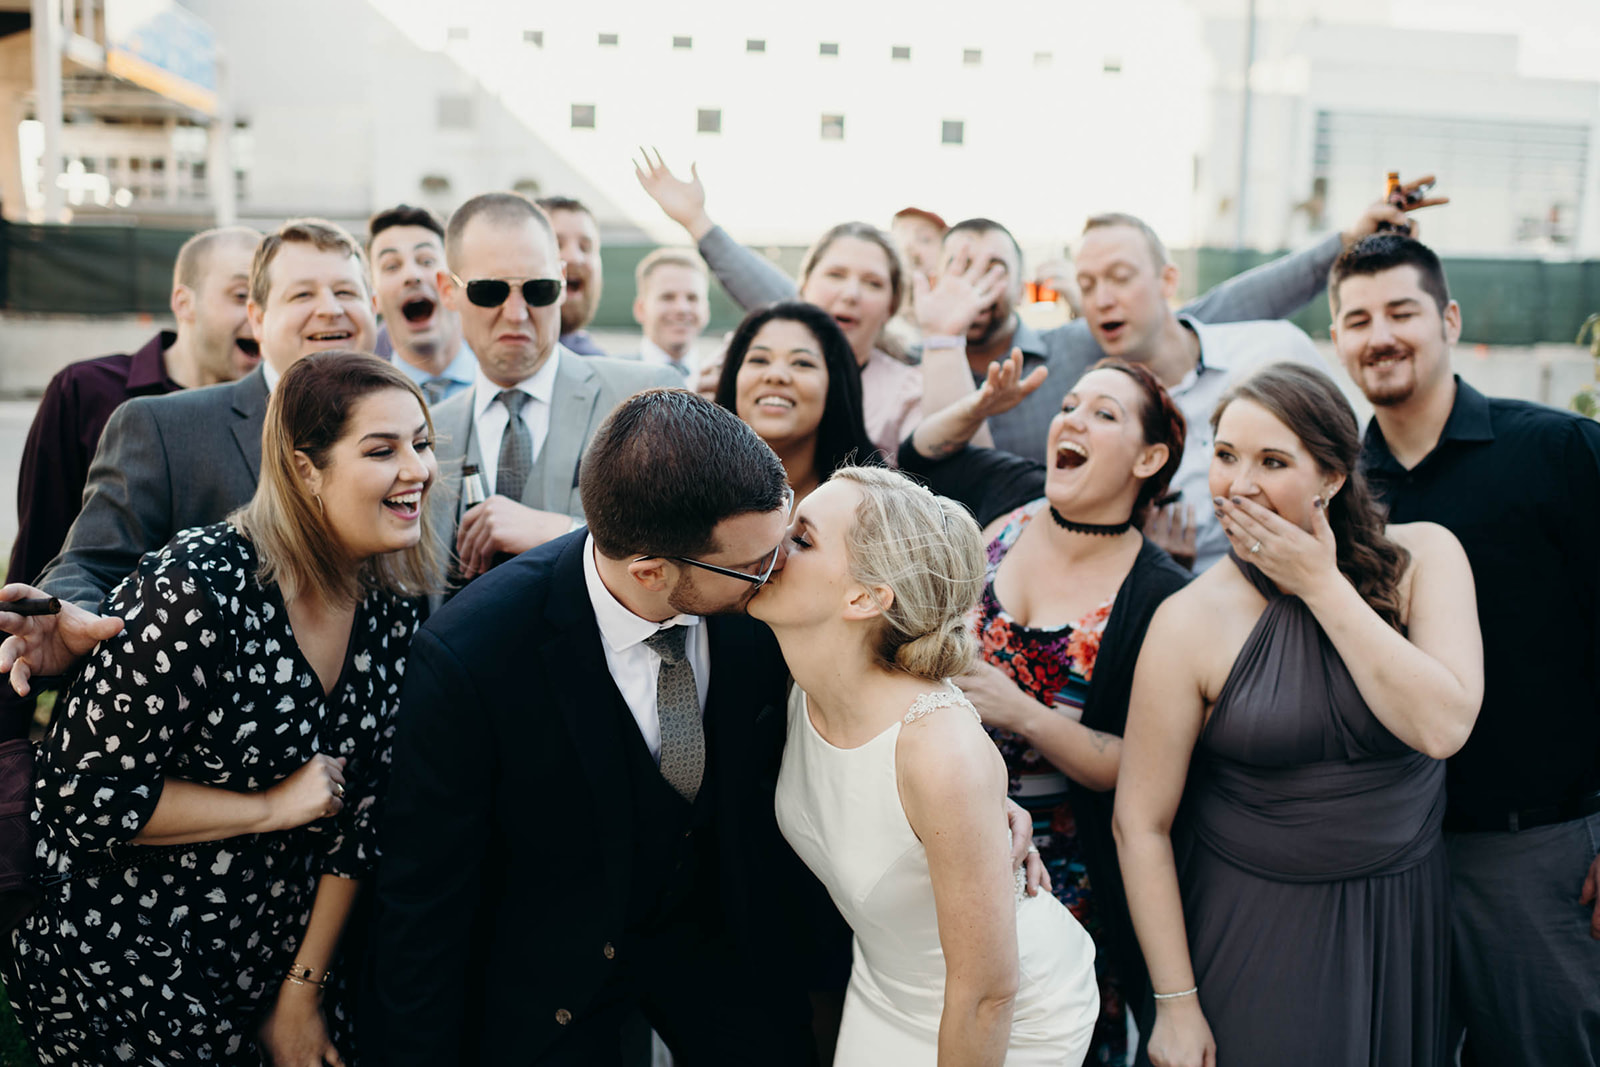 Bride and groom celebrate with friends following wedding ceremony